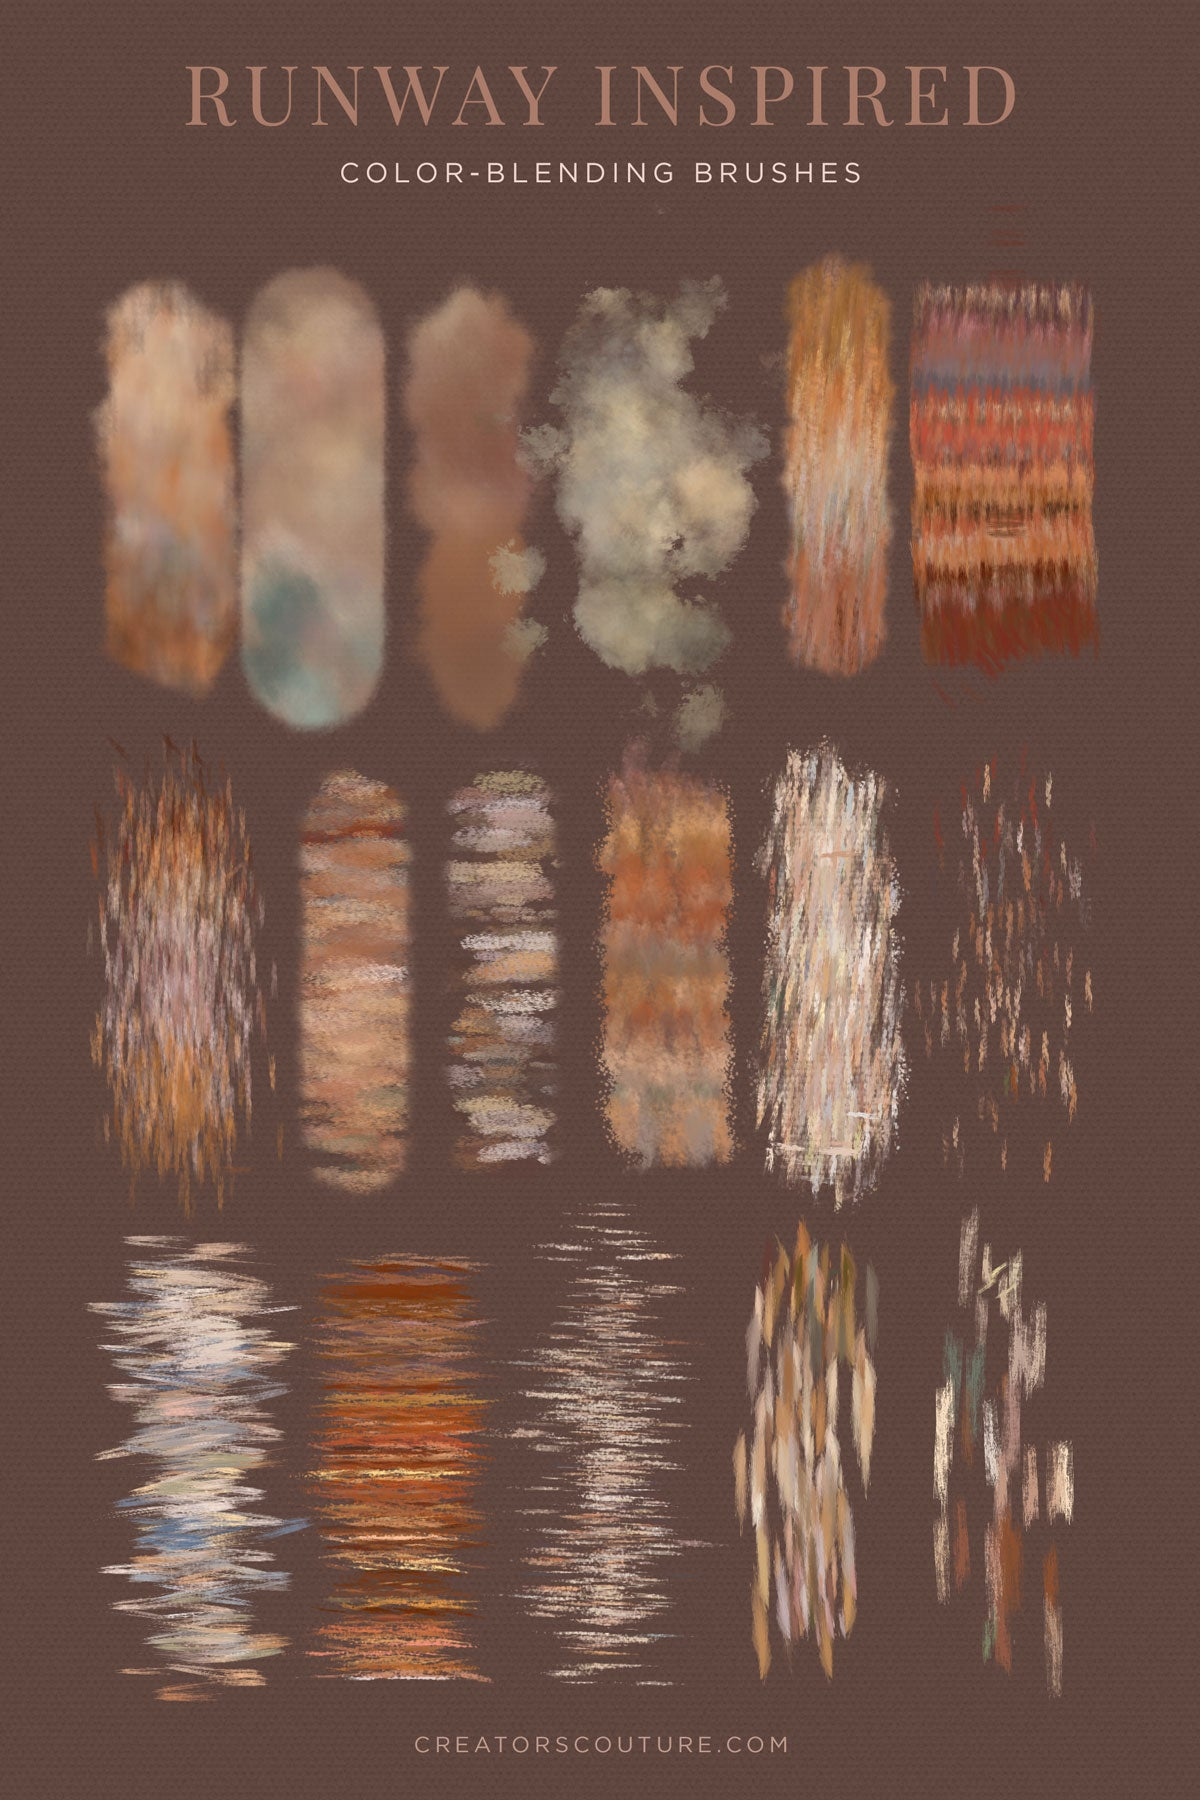 Fabric, Fiber, and Textile inspired Photoshop brushes